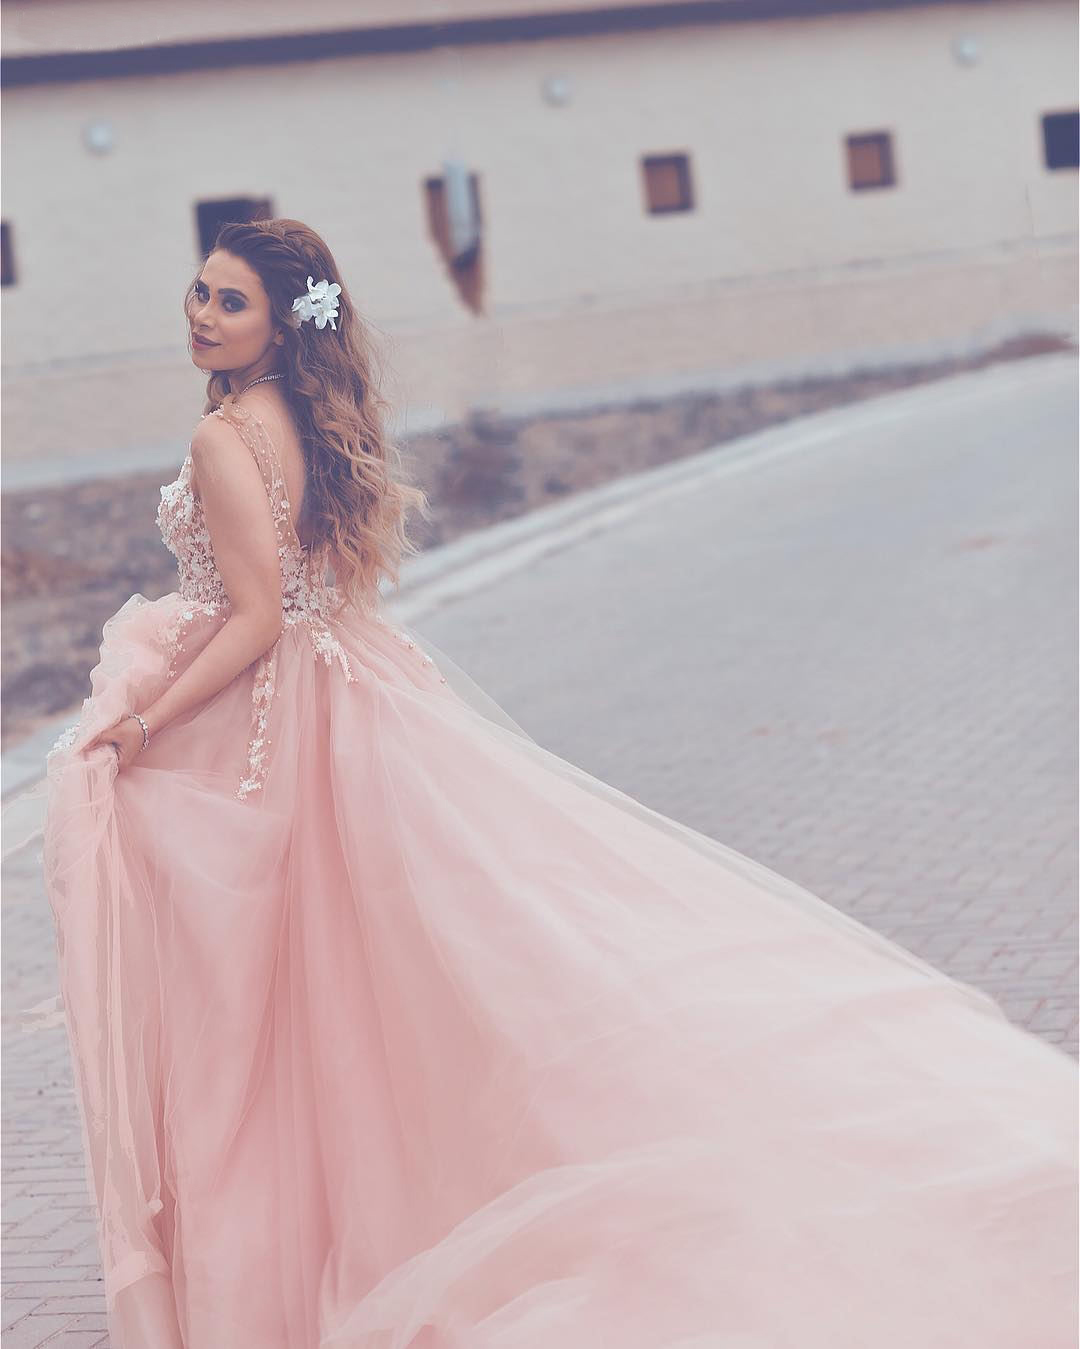 Opening Back Long Prom Dresses with Pearls Lace Appliques ,Soft Tulle Puffy Party Gowns for Special Occasion ,Elegant Formal Dress